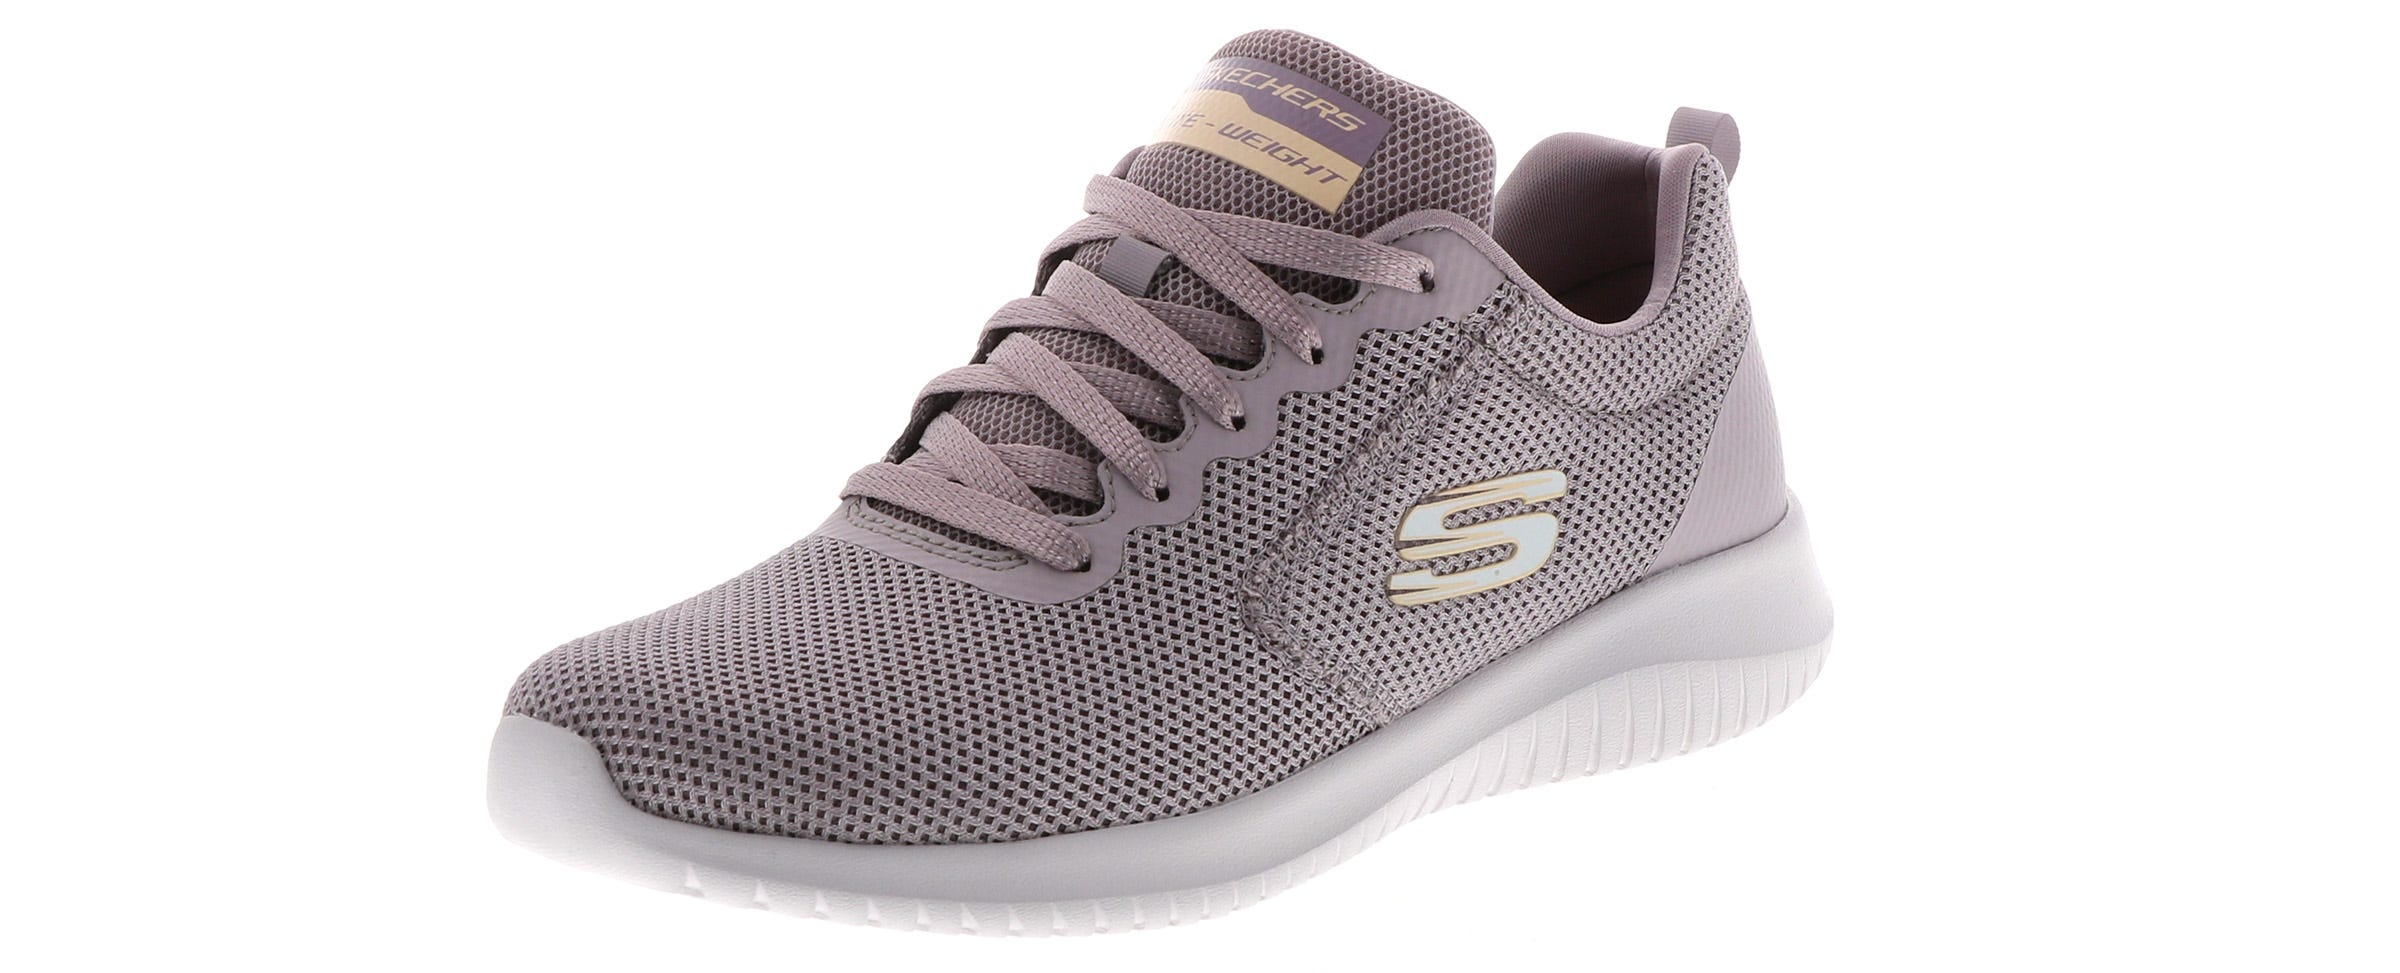 Women's Skechers Ultra Flex Free Spirits Purple Shoe Sensation  Shoe Sensation